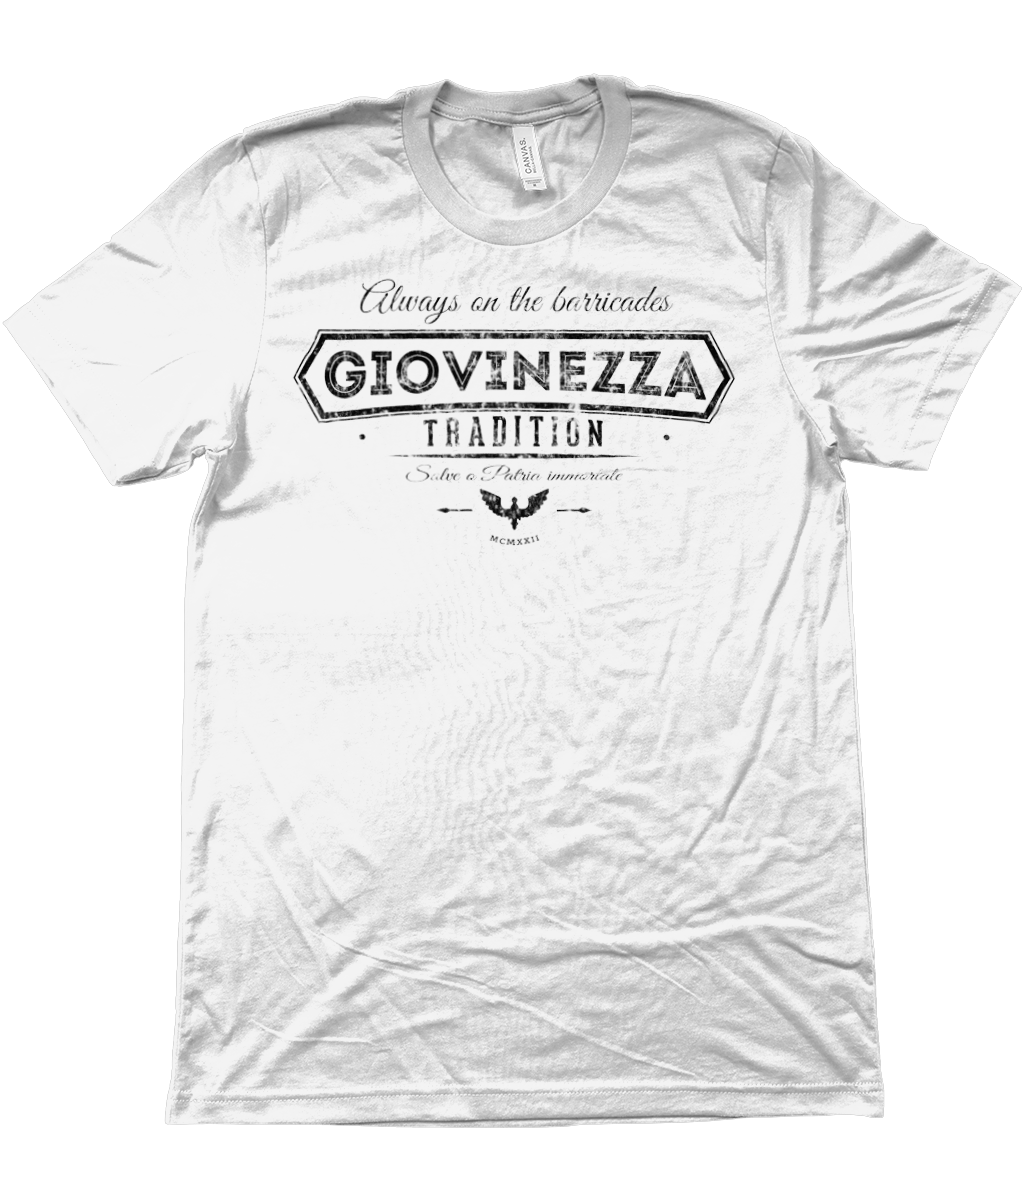 Giovinezza - Tradition (Black print)